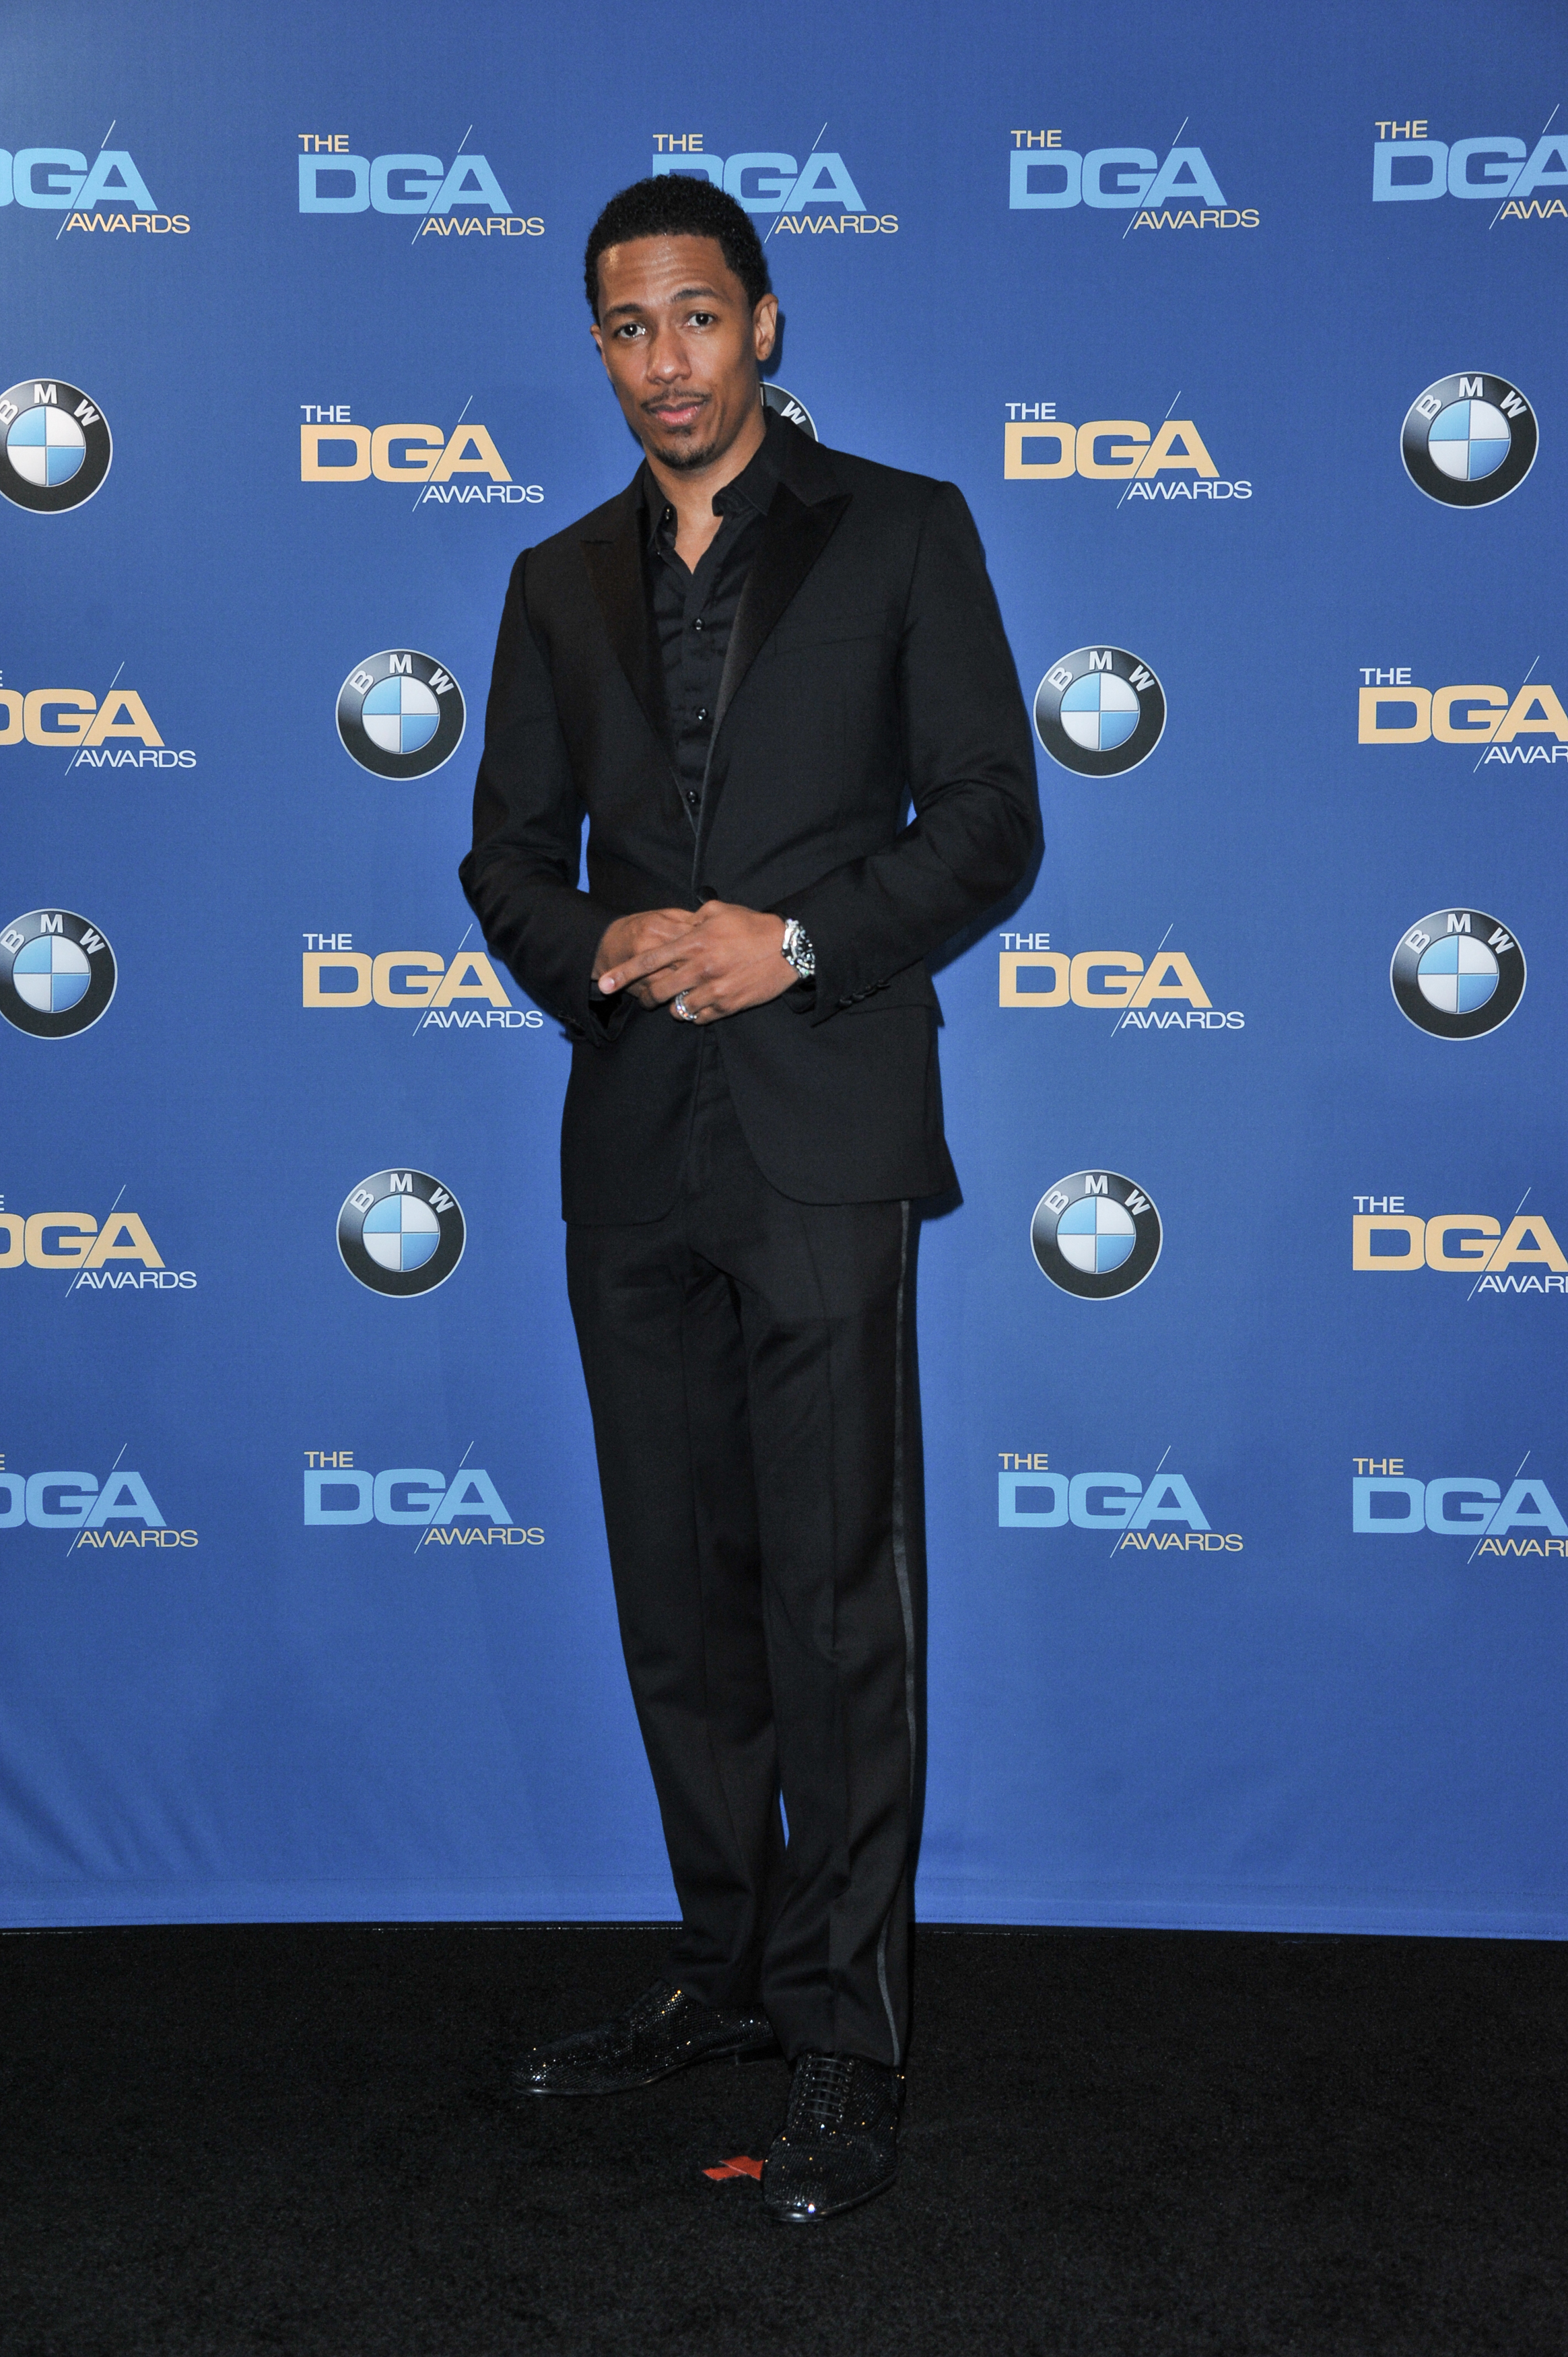 nick cannon 2014 dga